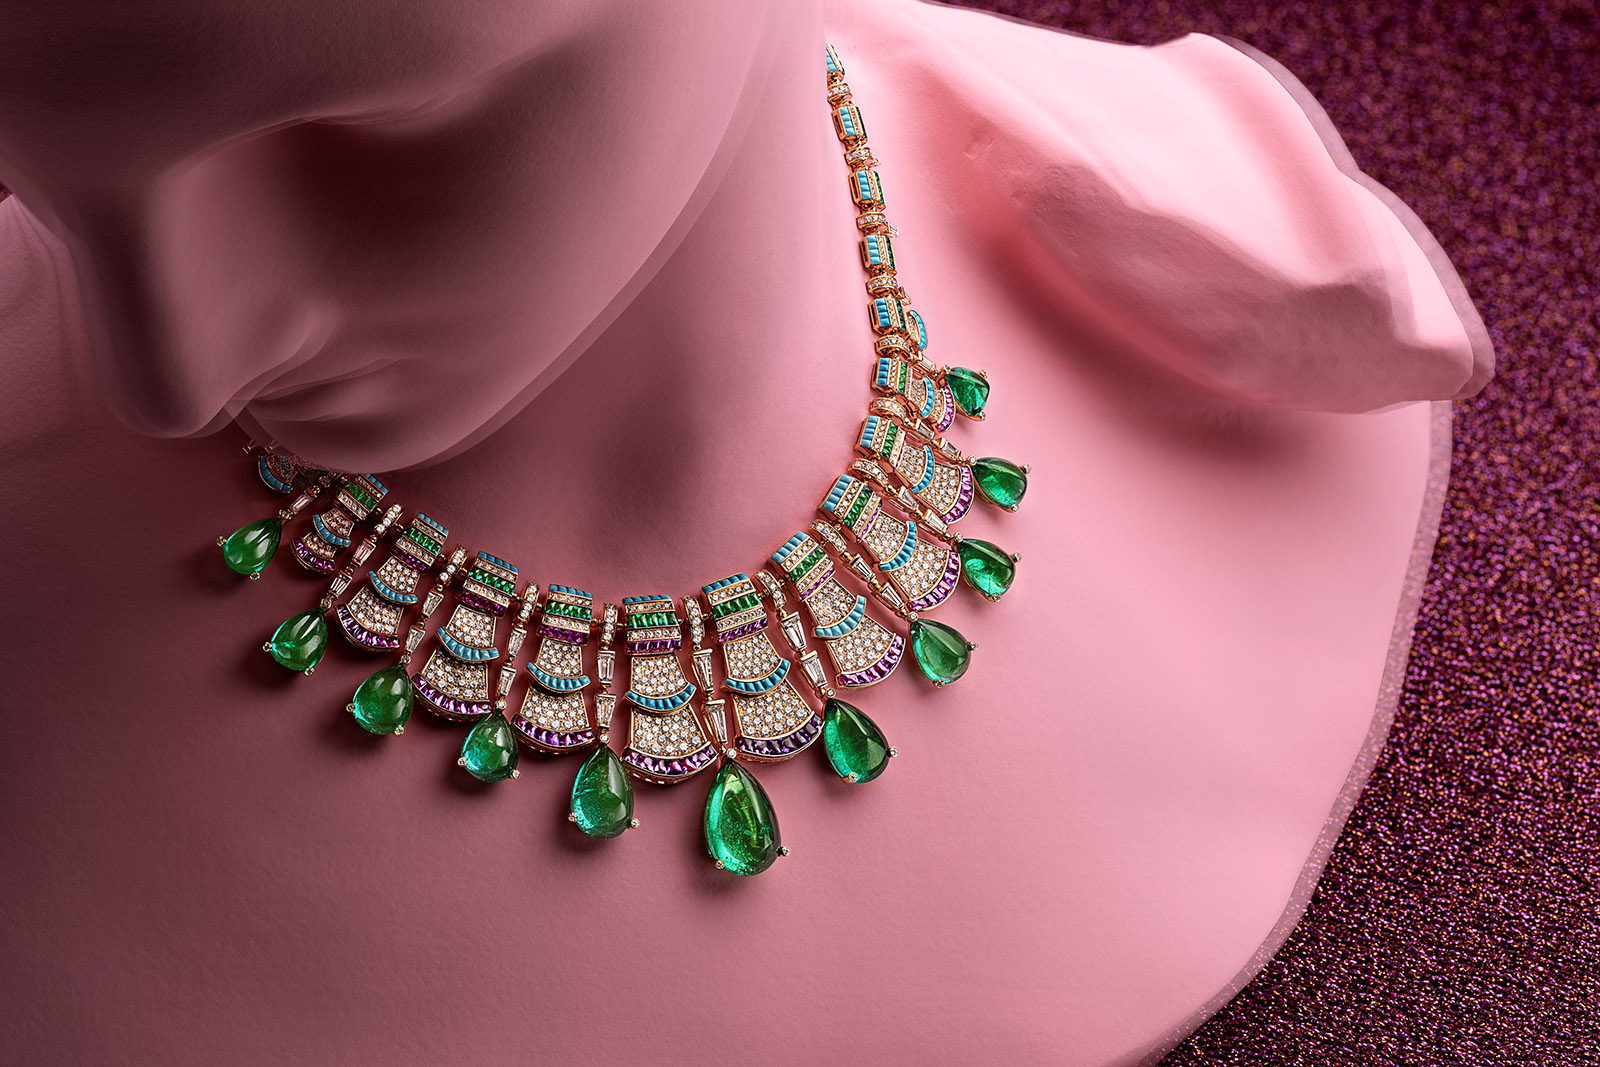 Bvlgari 'Precious Ruffles' necklace from 'Roaring 80s' line in 65.44ct drop cut Zambian emeralds, amethysts, emeralds, turquoise, and diamonds